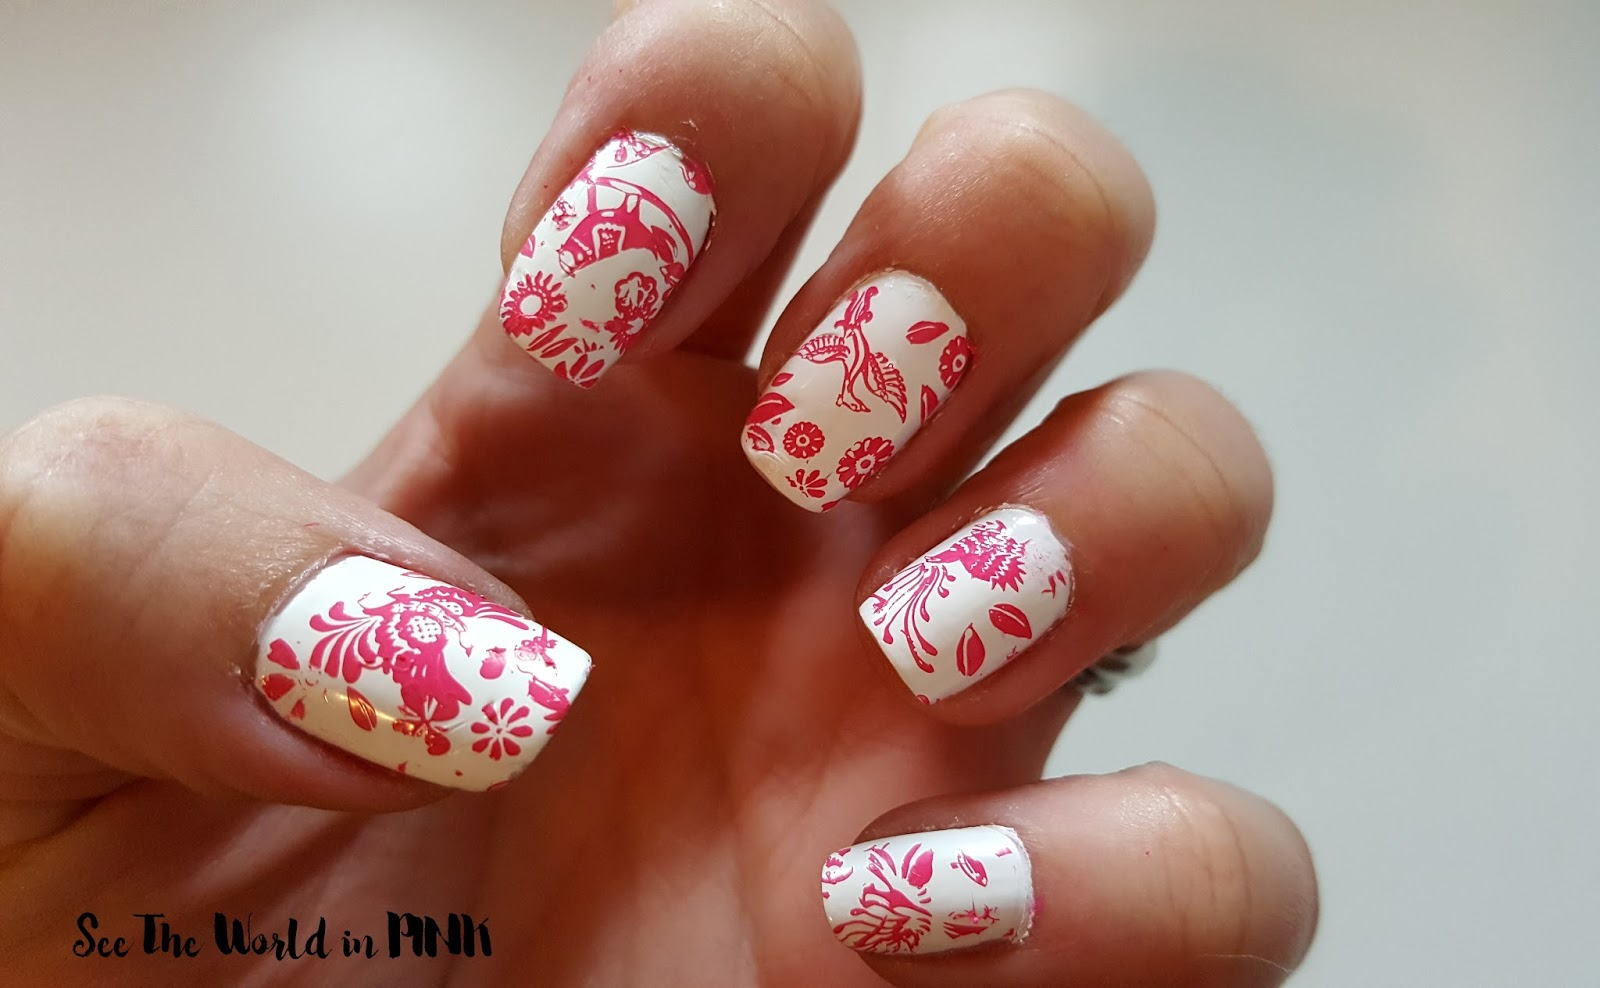 Manicure Tuesday - MoYou London Stamped Nails Week #2